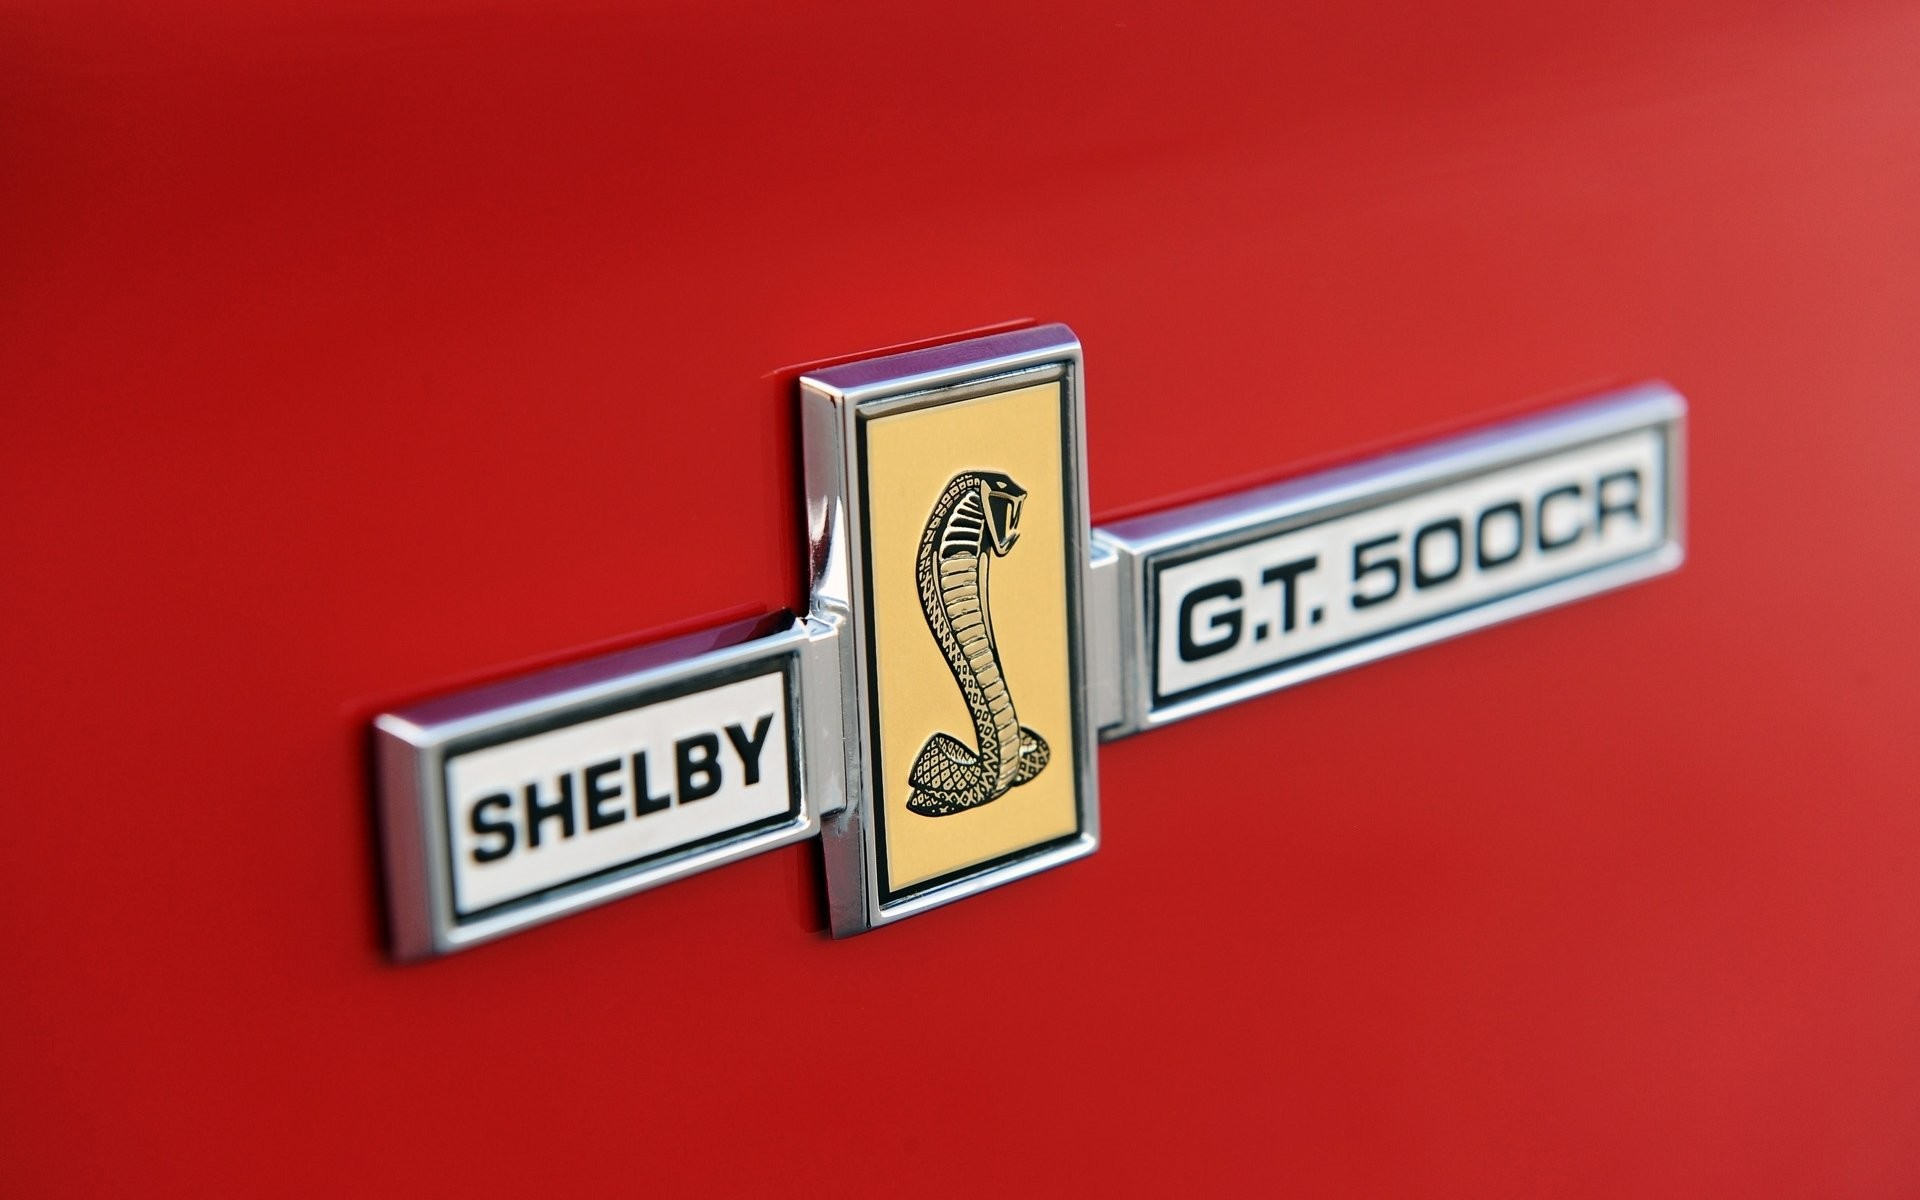 classic recreations ford mustang shelby gt 500cr convertible ford mustang  shelby convertible label emblem cobra close